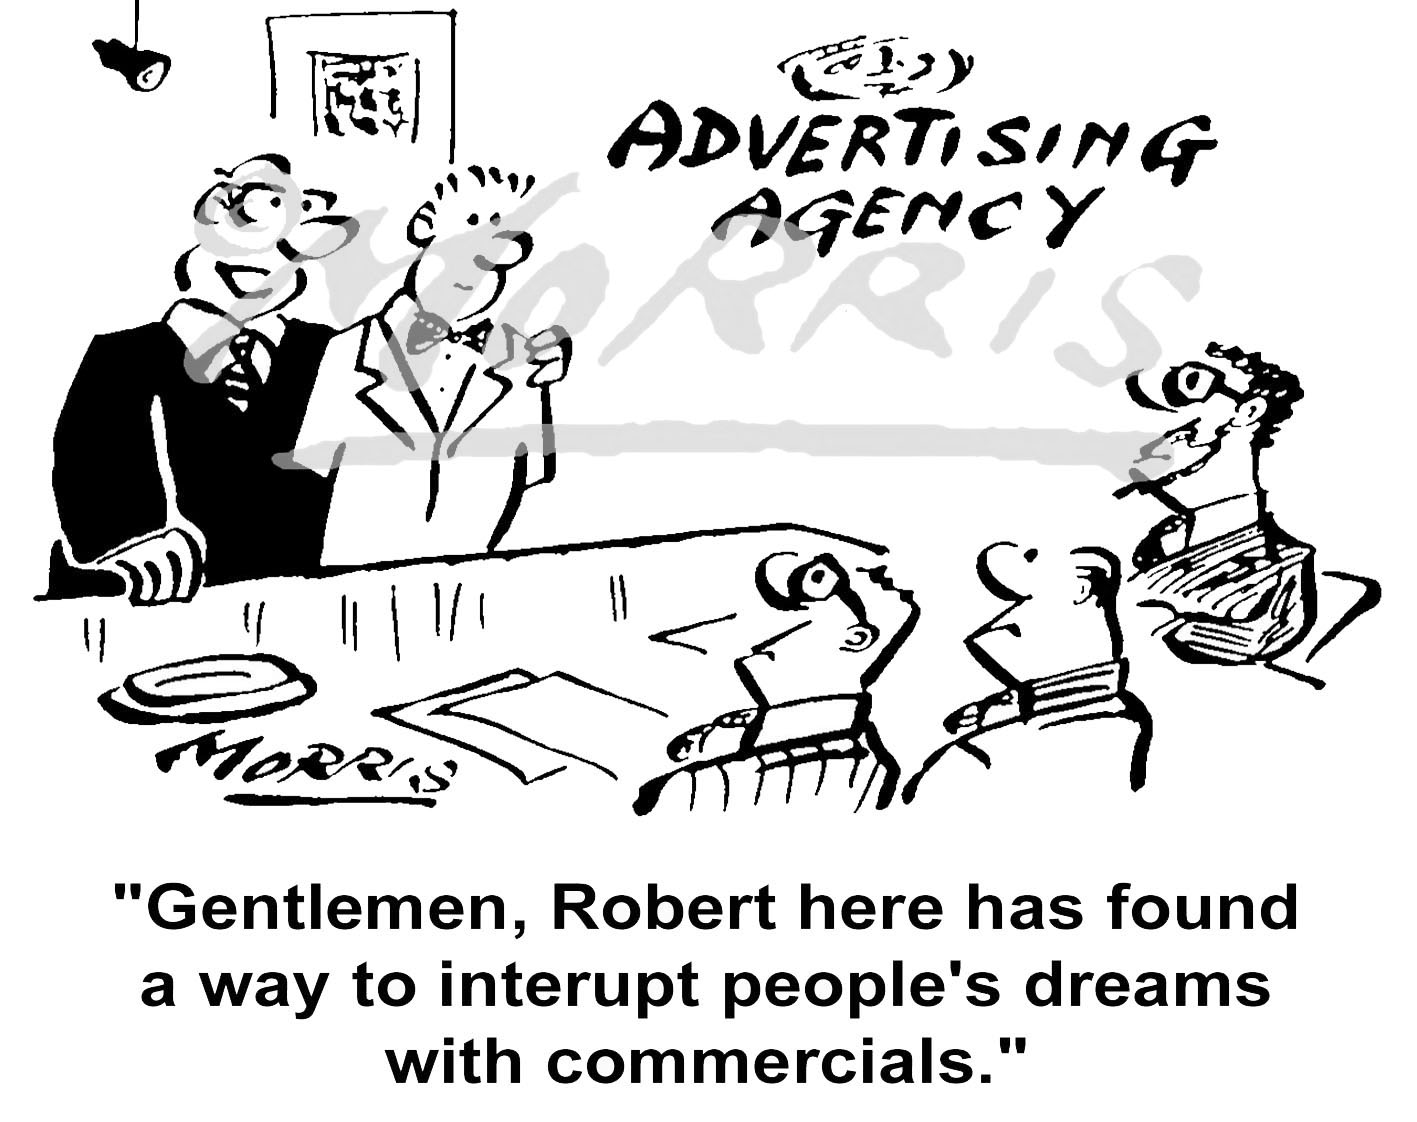 Adverising agency business cartoon – Ref: 2300bw